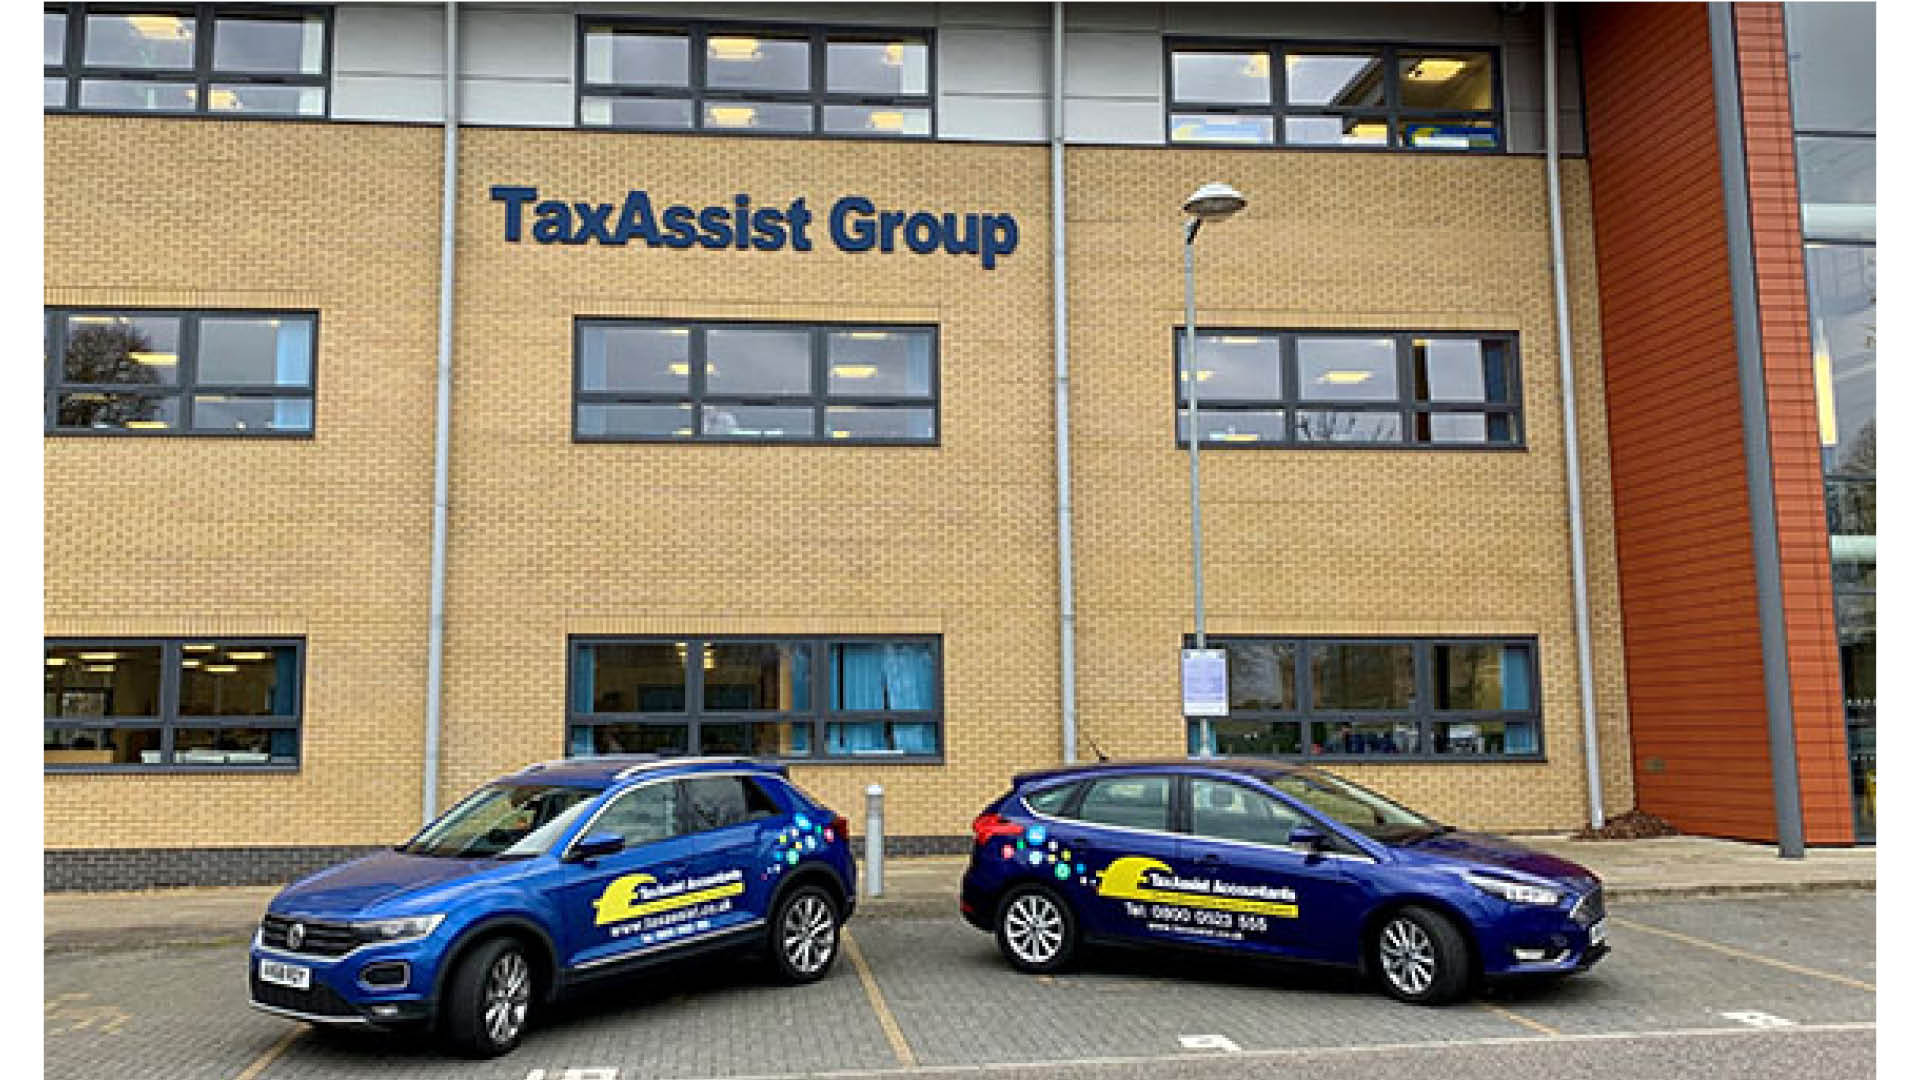 New staff and promotions strengthen the TaxAssist Group support team